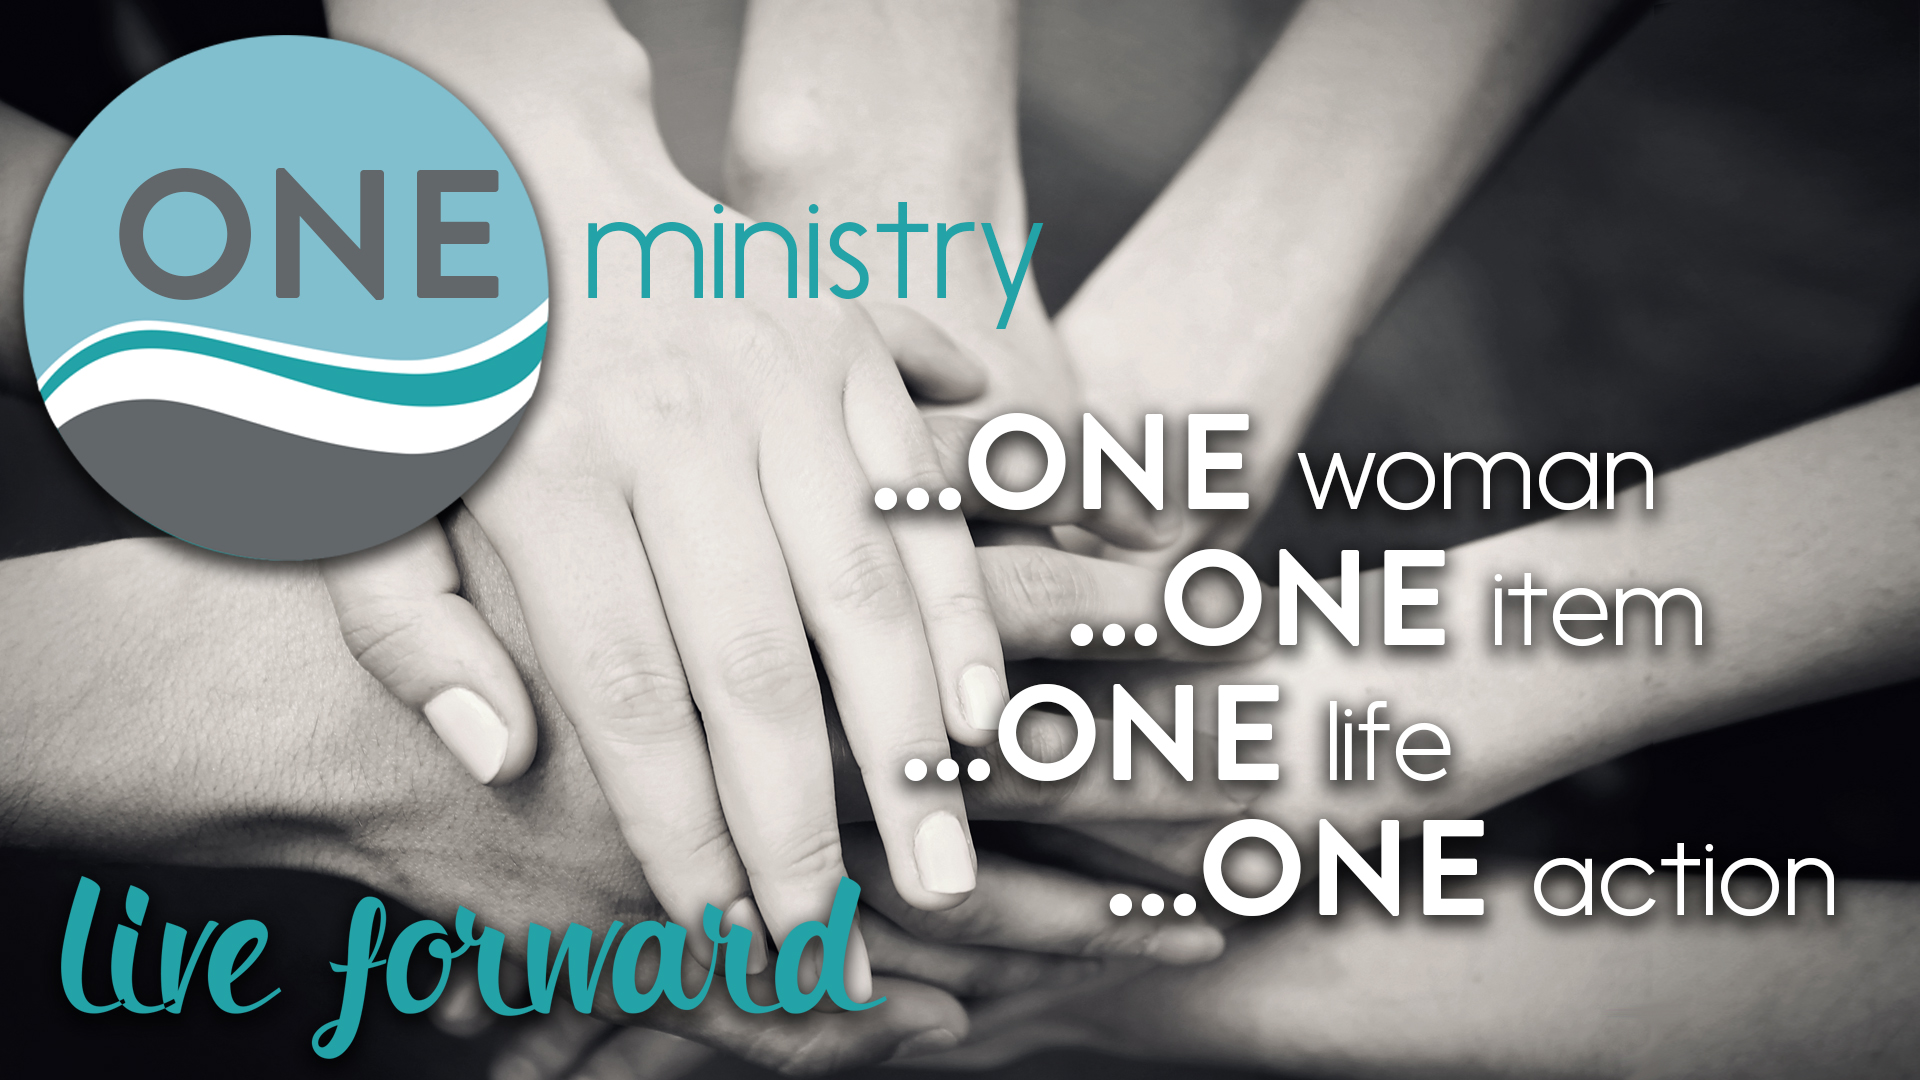 One Ministry, one woman, one item, one life, one action